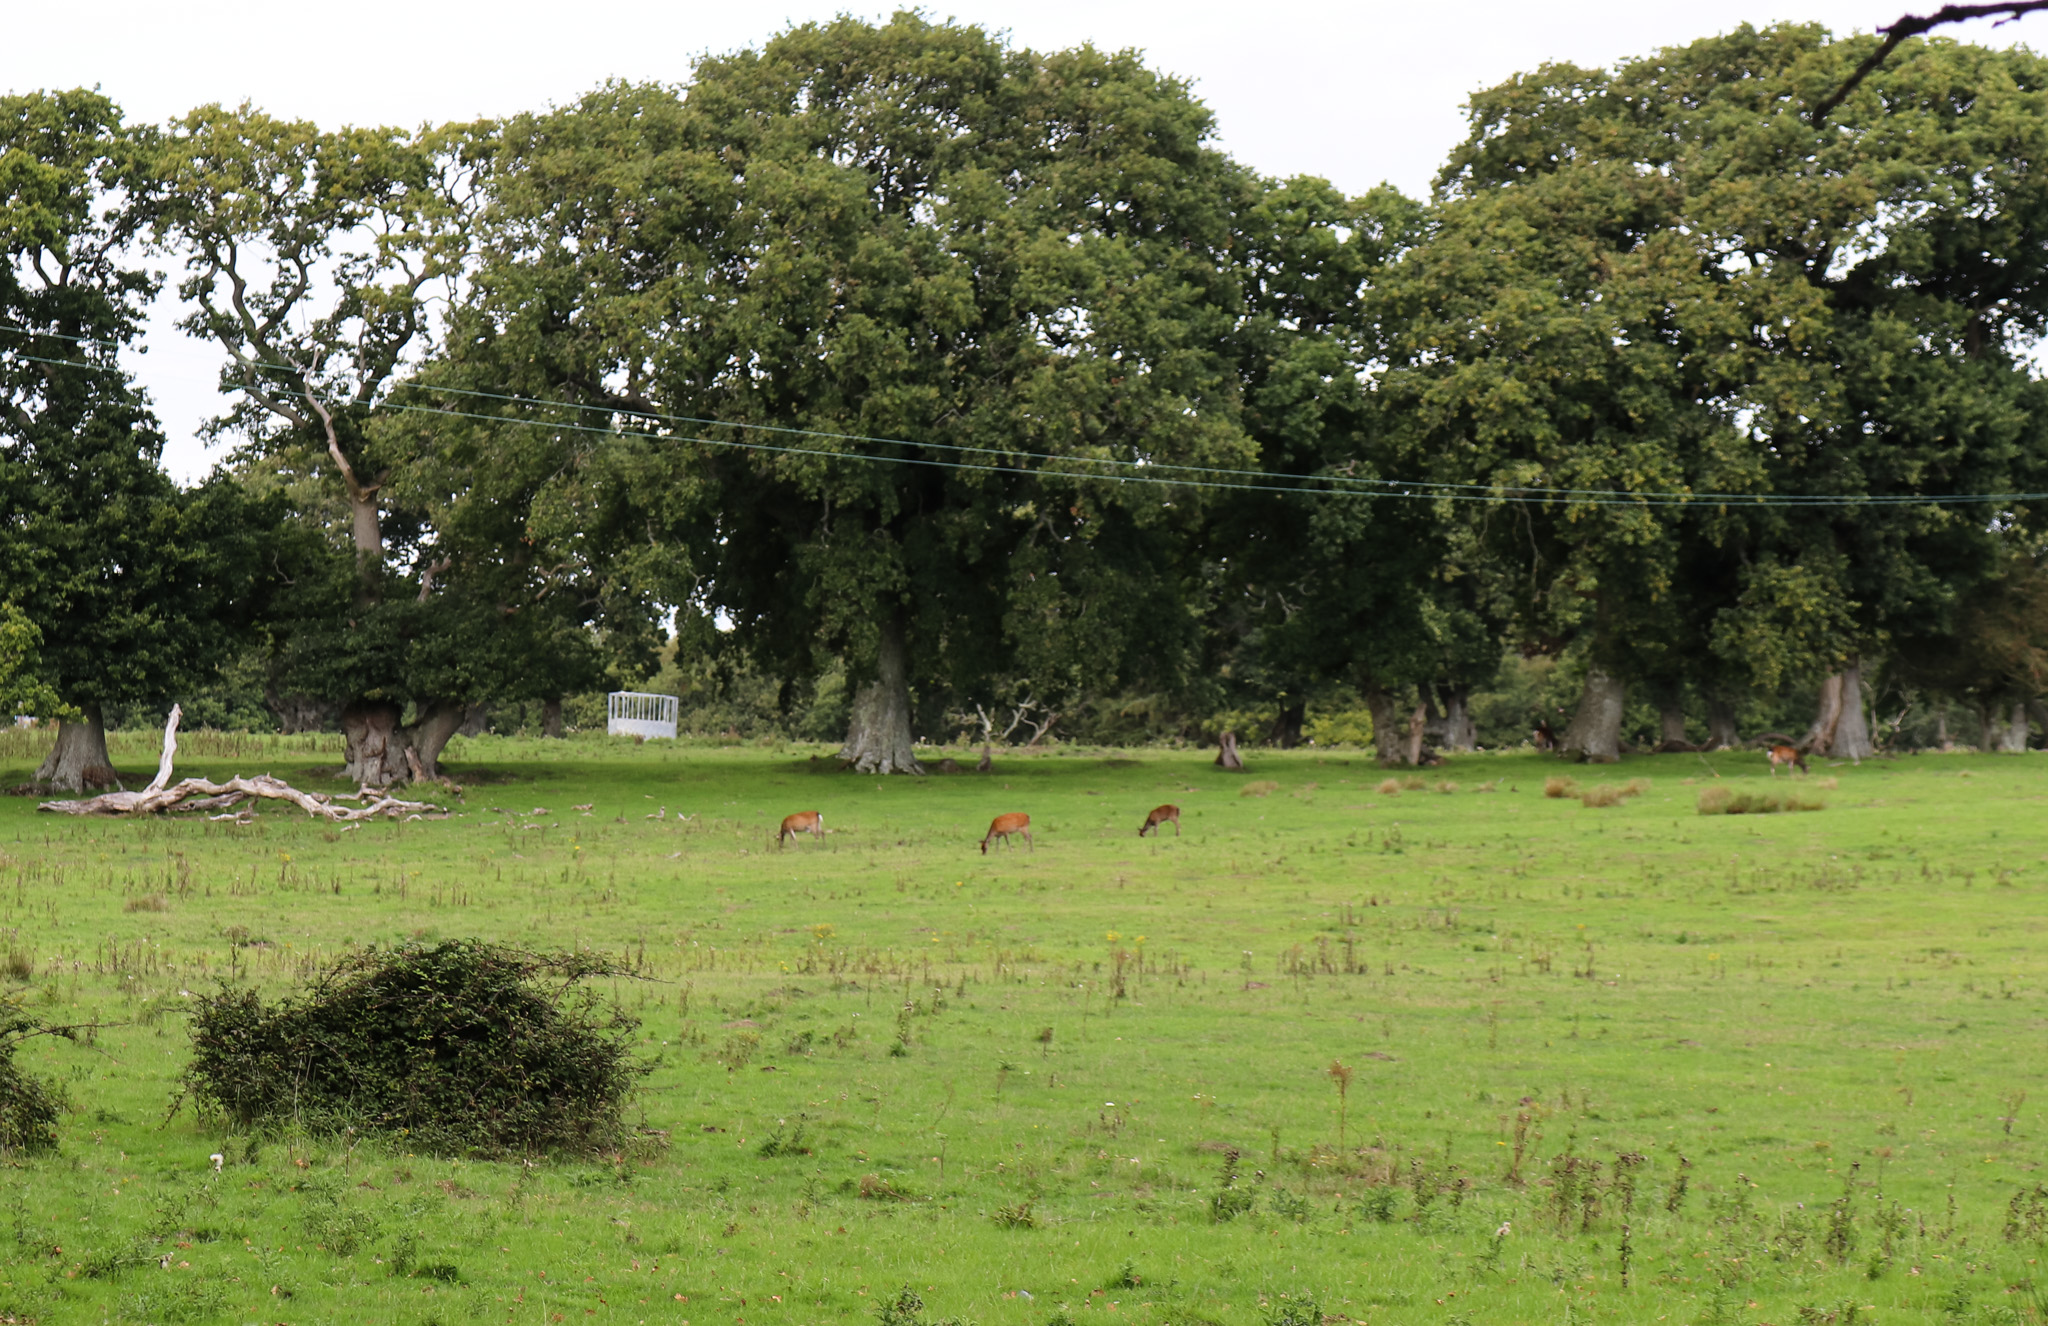 Deer in field at RSPB Arne